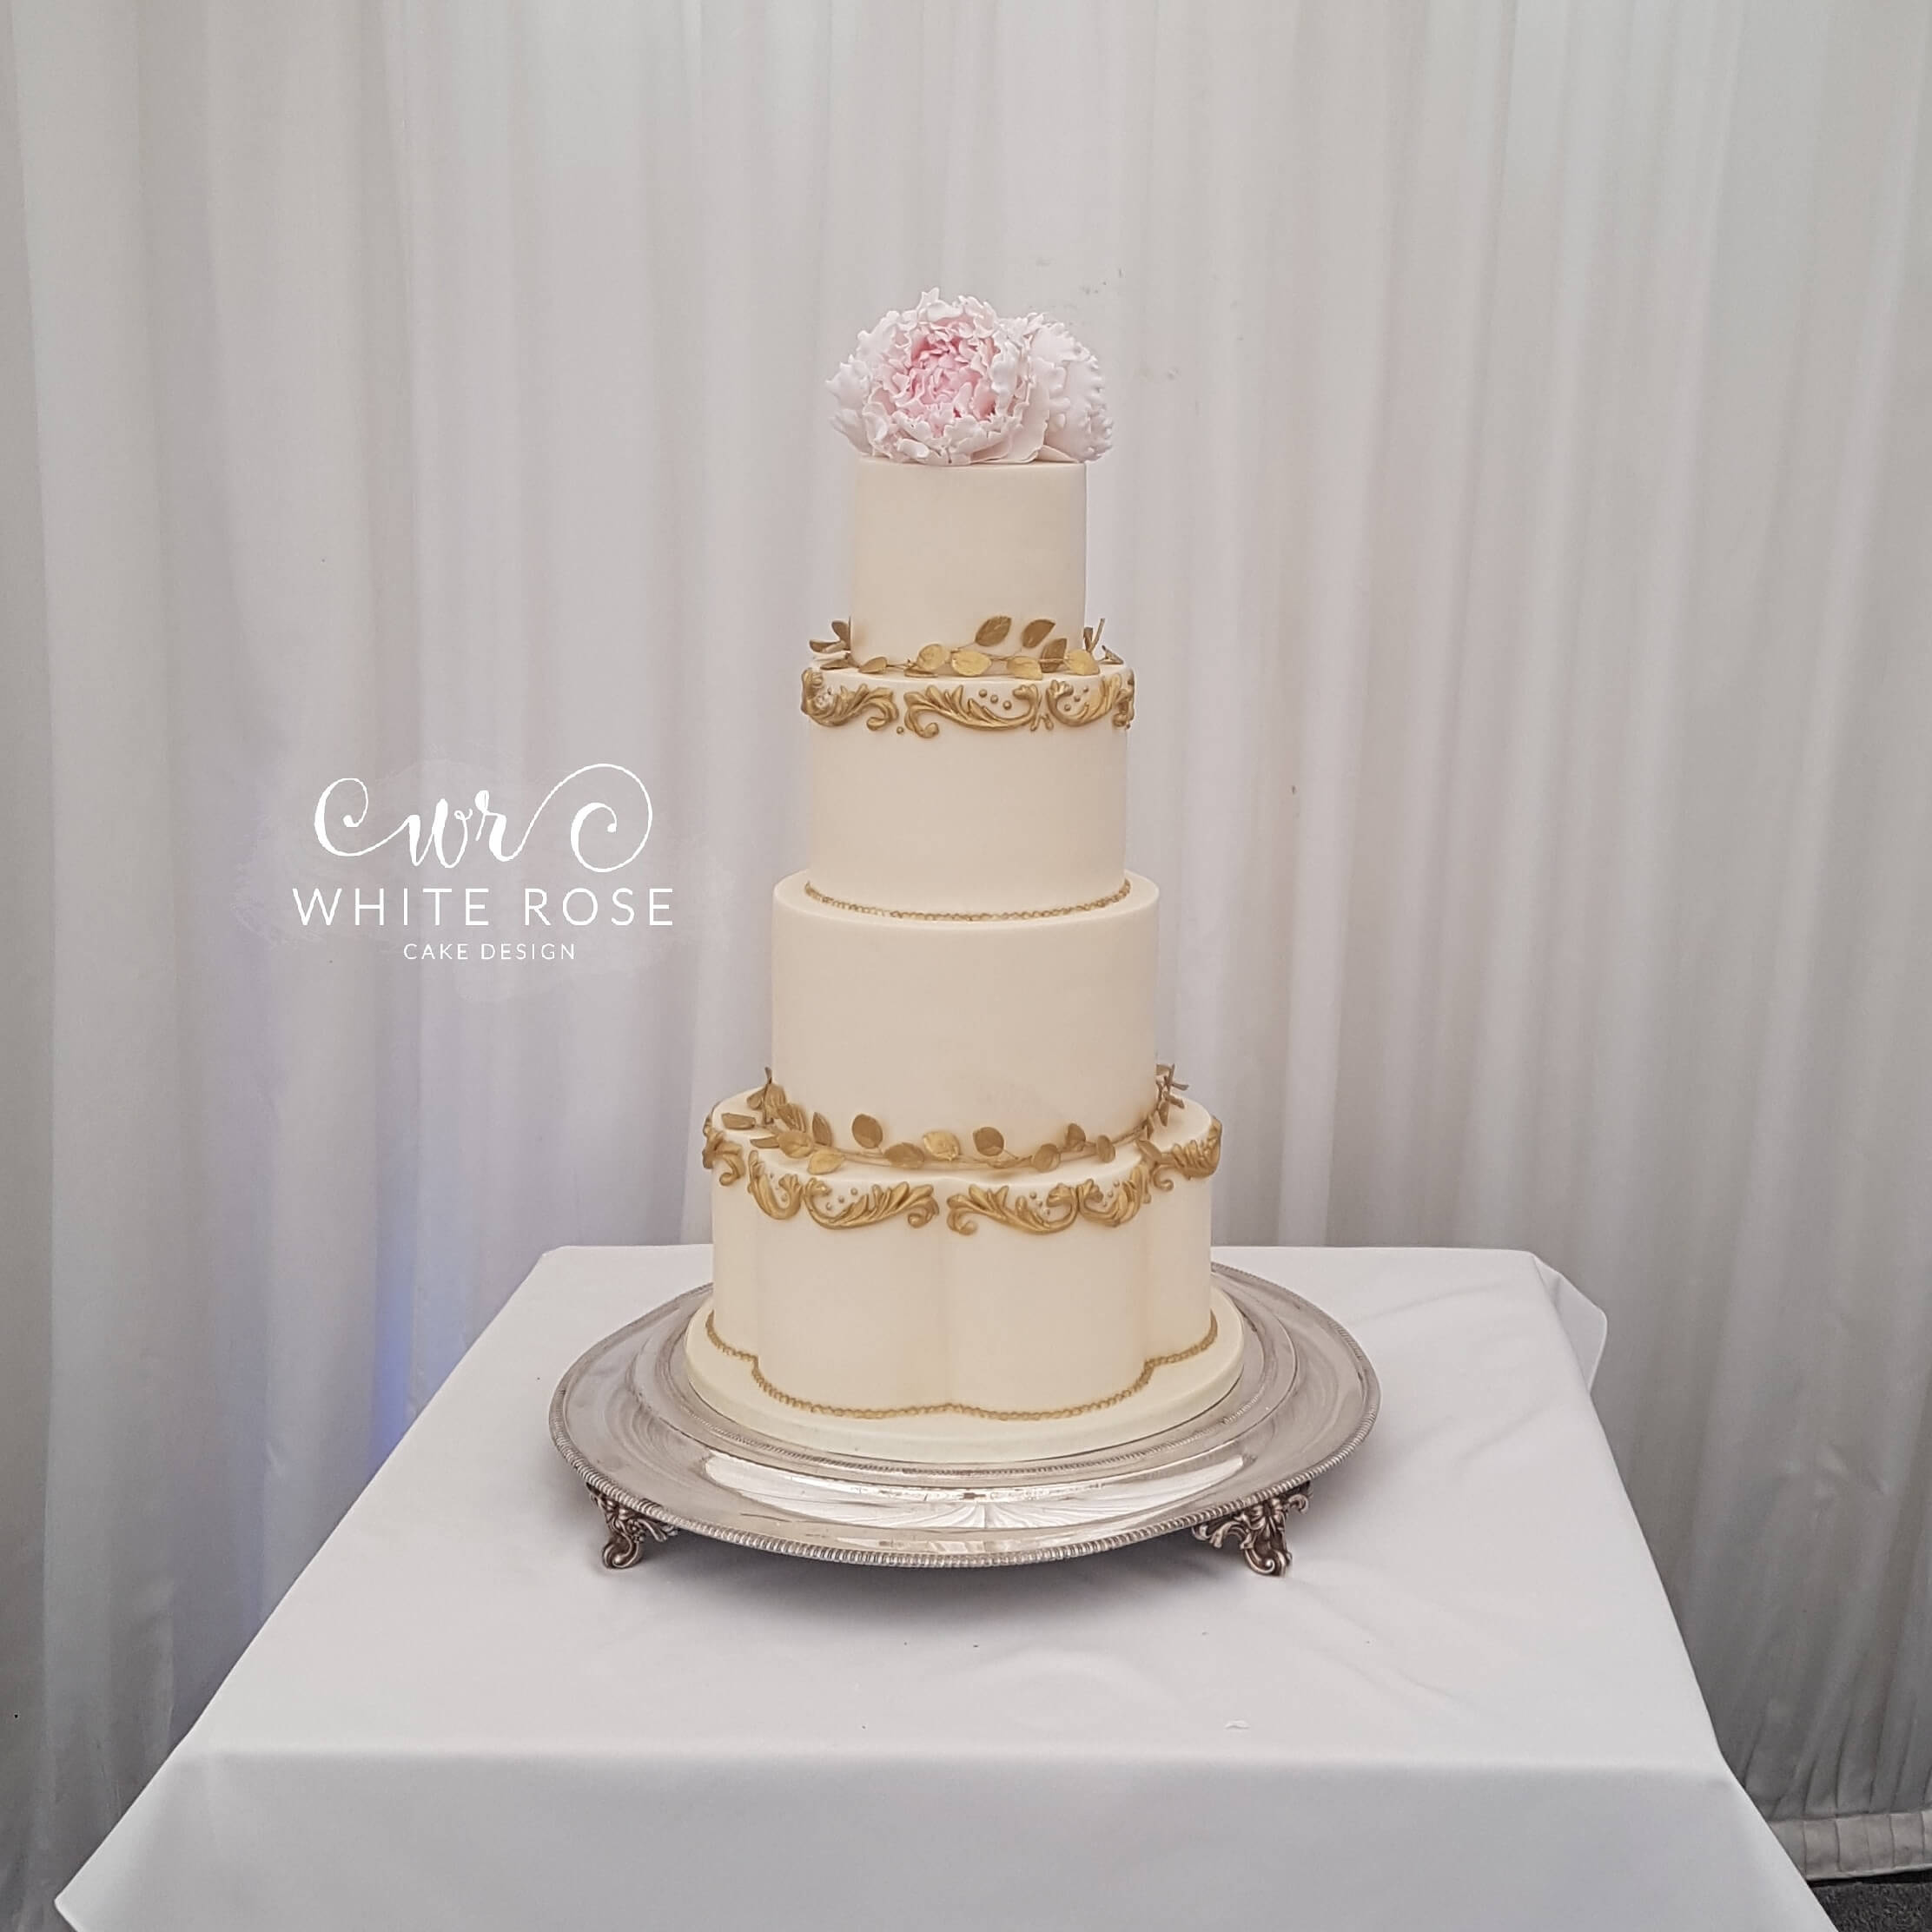 Baroque Style Wedding Cake with Pink Peonies by White Rose Cake Design West Yorkshire at Woodlands Leeds